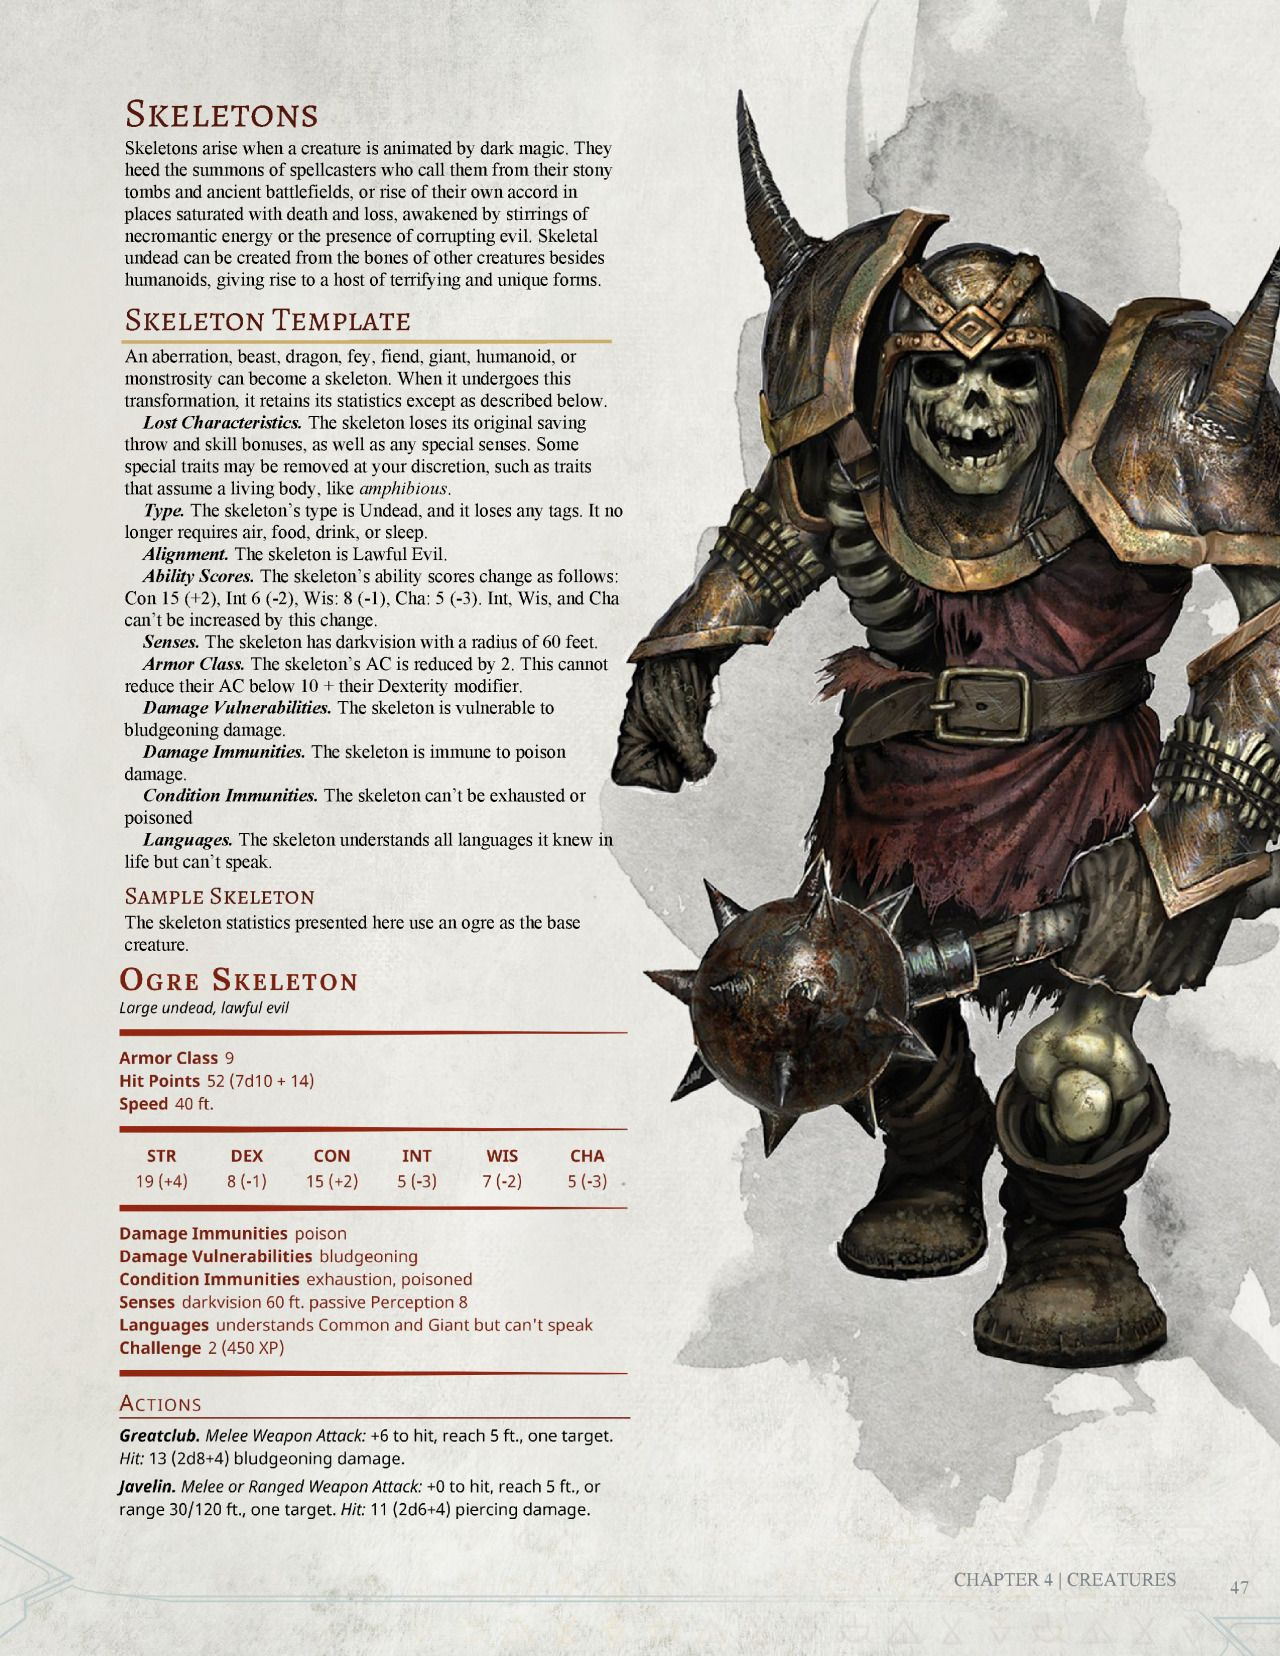 DnD 5e Homebrew — Dark Arts Player's Companion Monsters Part